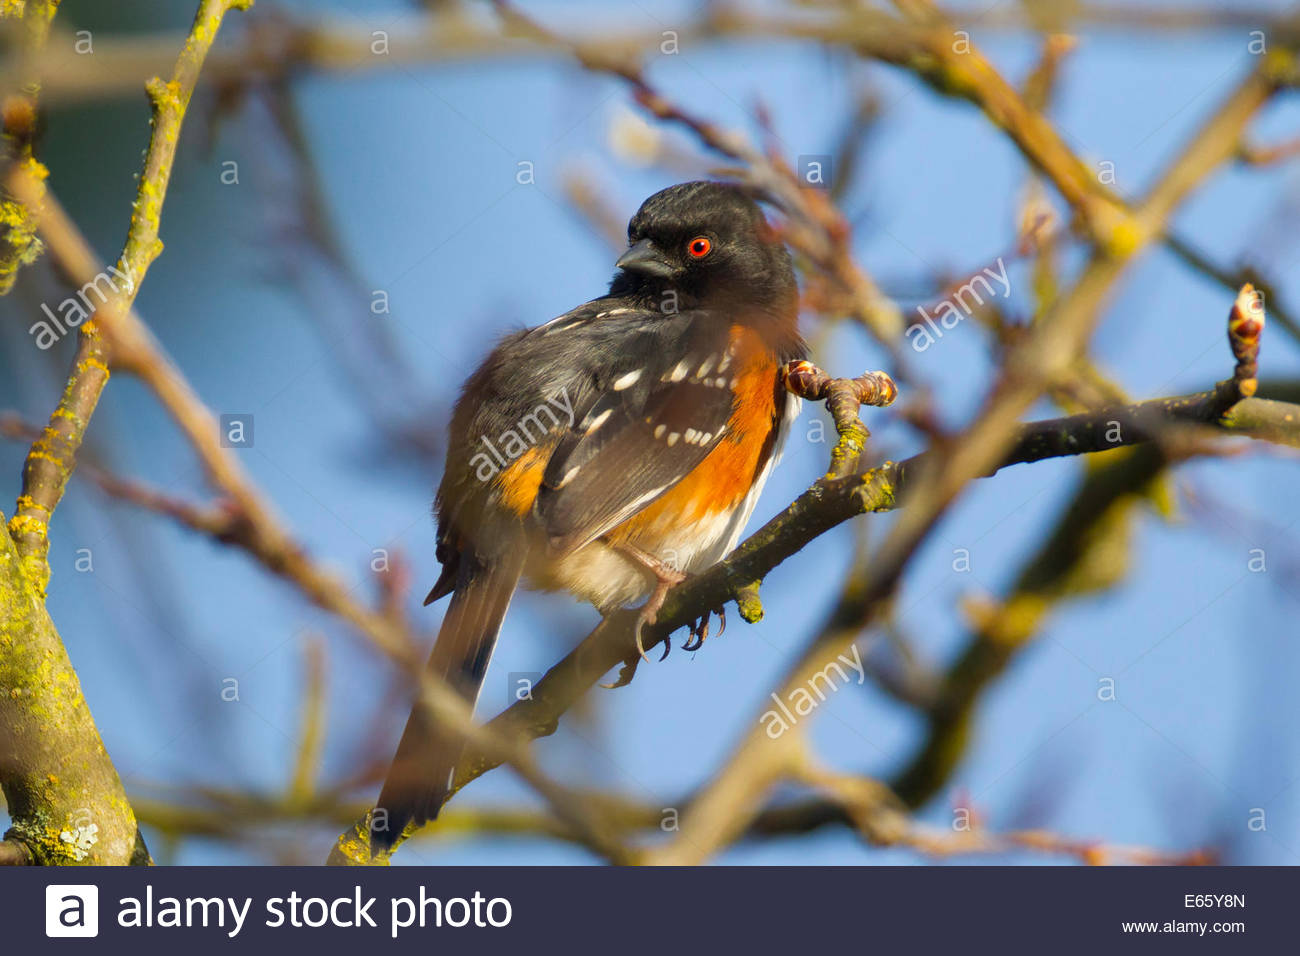 A spotted towhee (Pipilo maculatus) rests in a bare tree in early spring in Snohomish County, Washington. - Stock Image